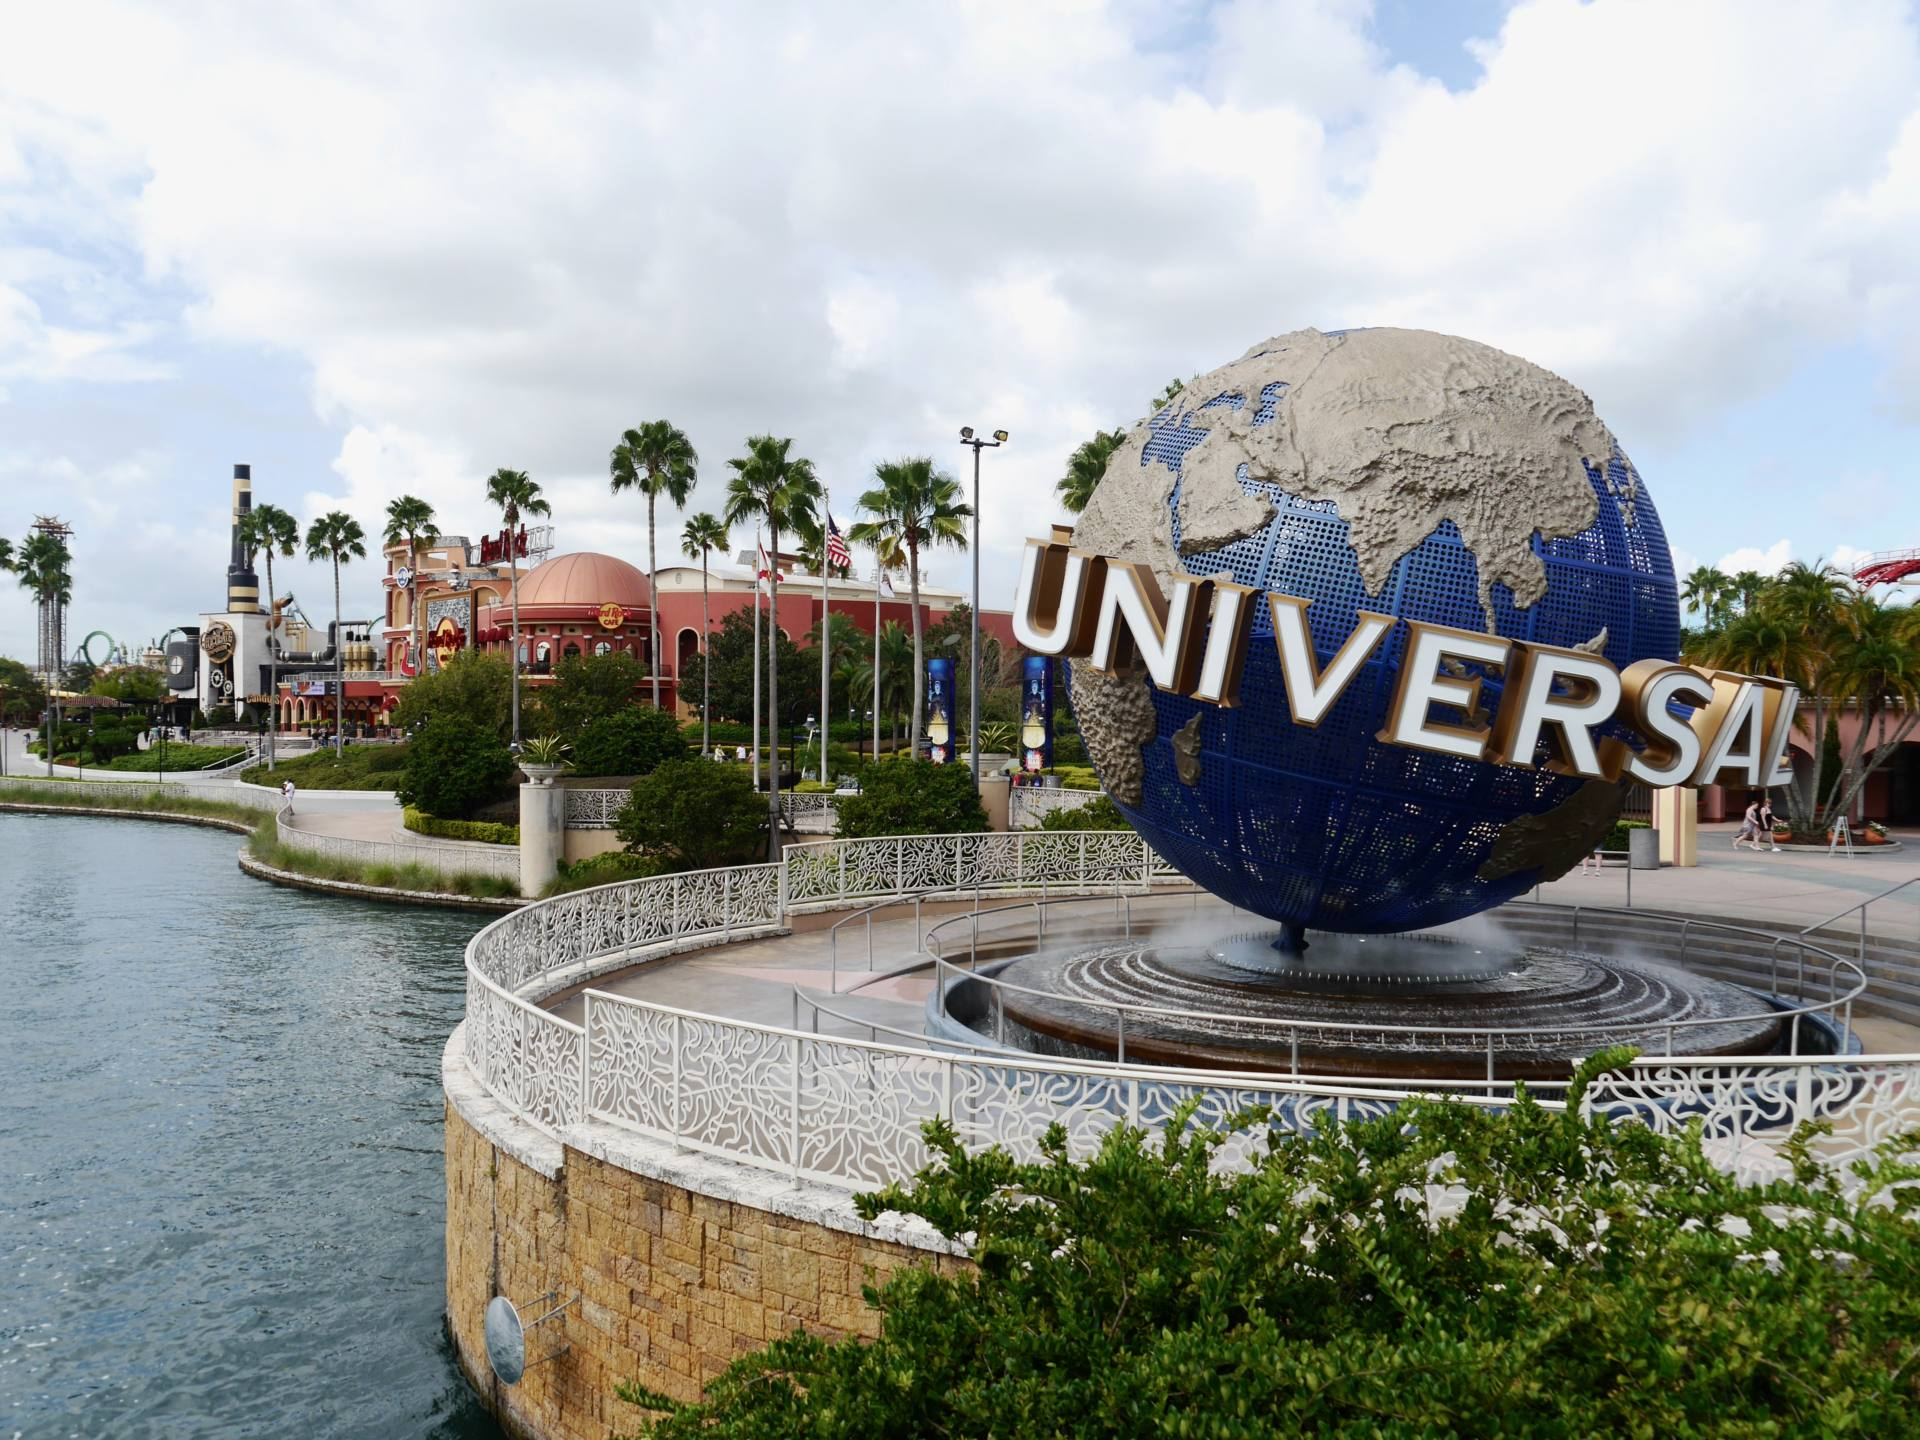 Things to know before visiting Universal Studios Orlando